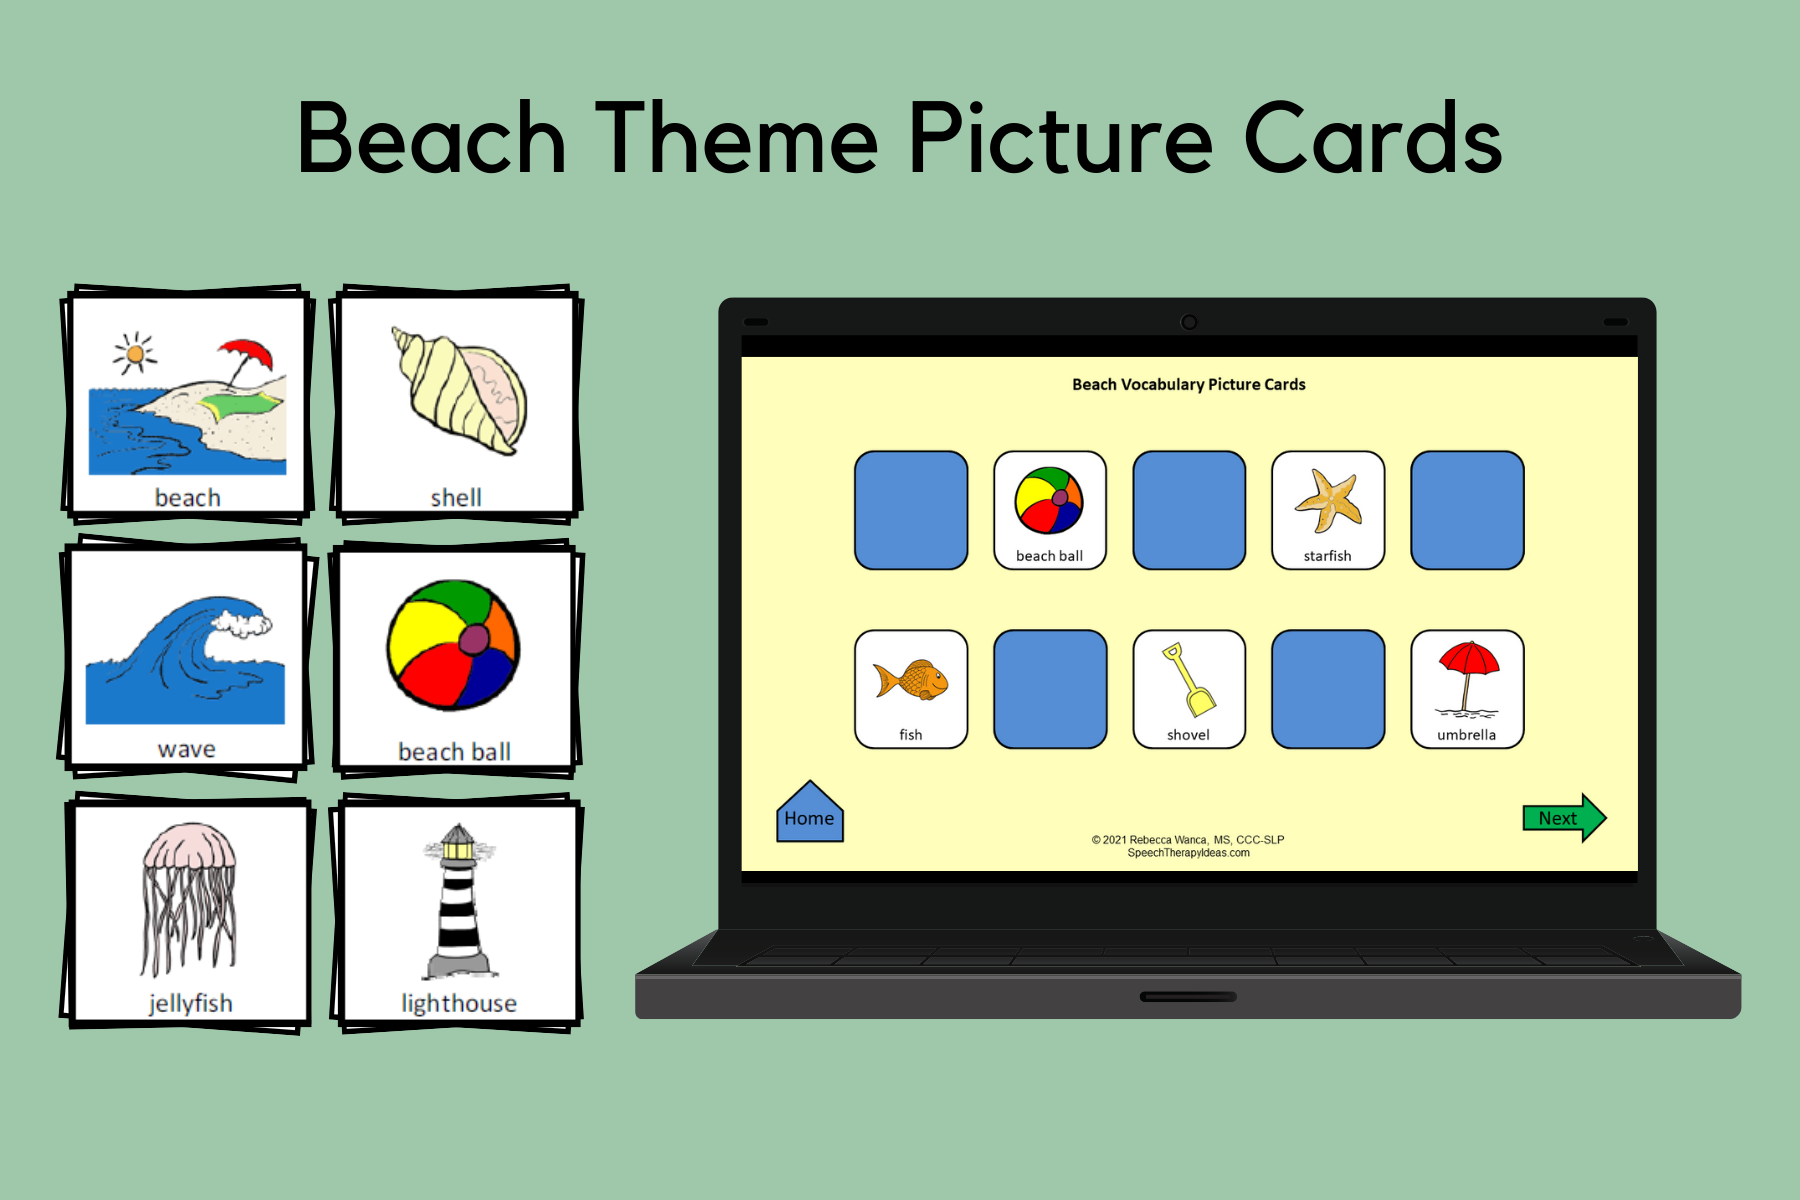 Beach Theme Picture Cards